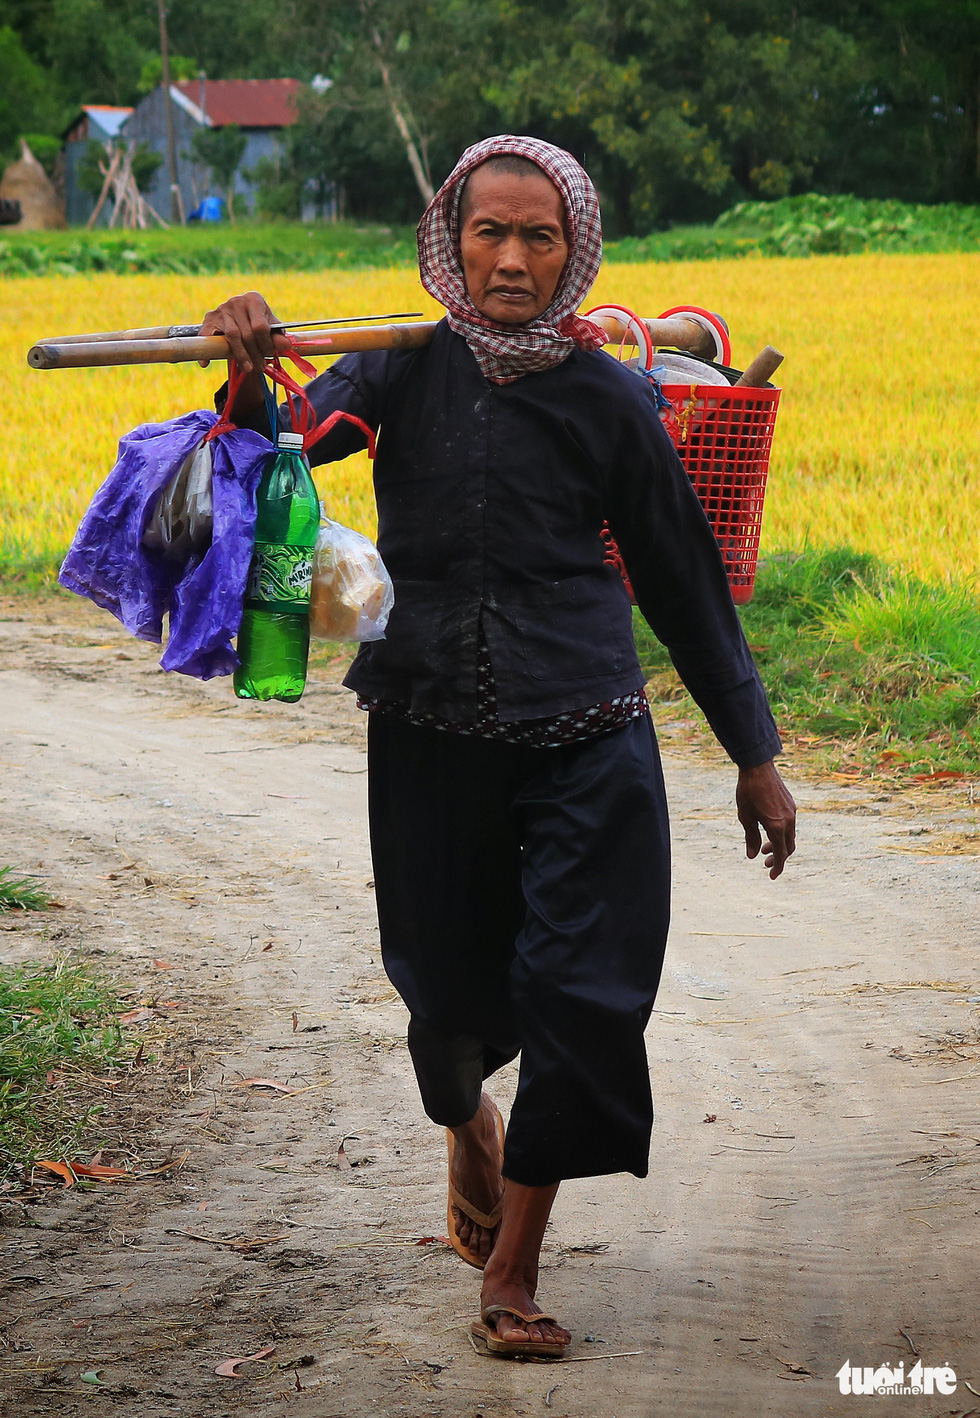 A woman is seen on her way to work on rice paddies in Tri Ton District, An Giang Province, southern Vietnam. Photo: Nguyet Nhi / Tuoi Tre